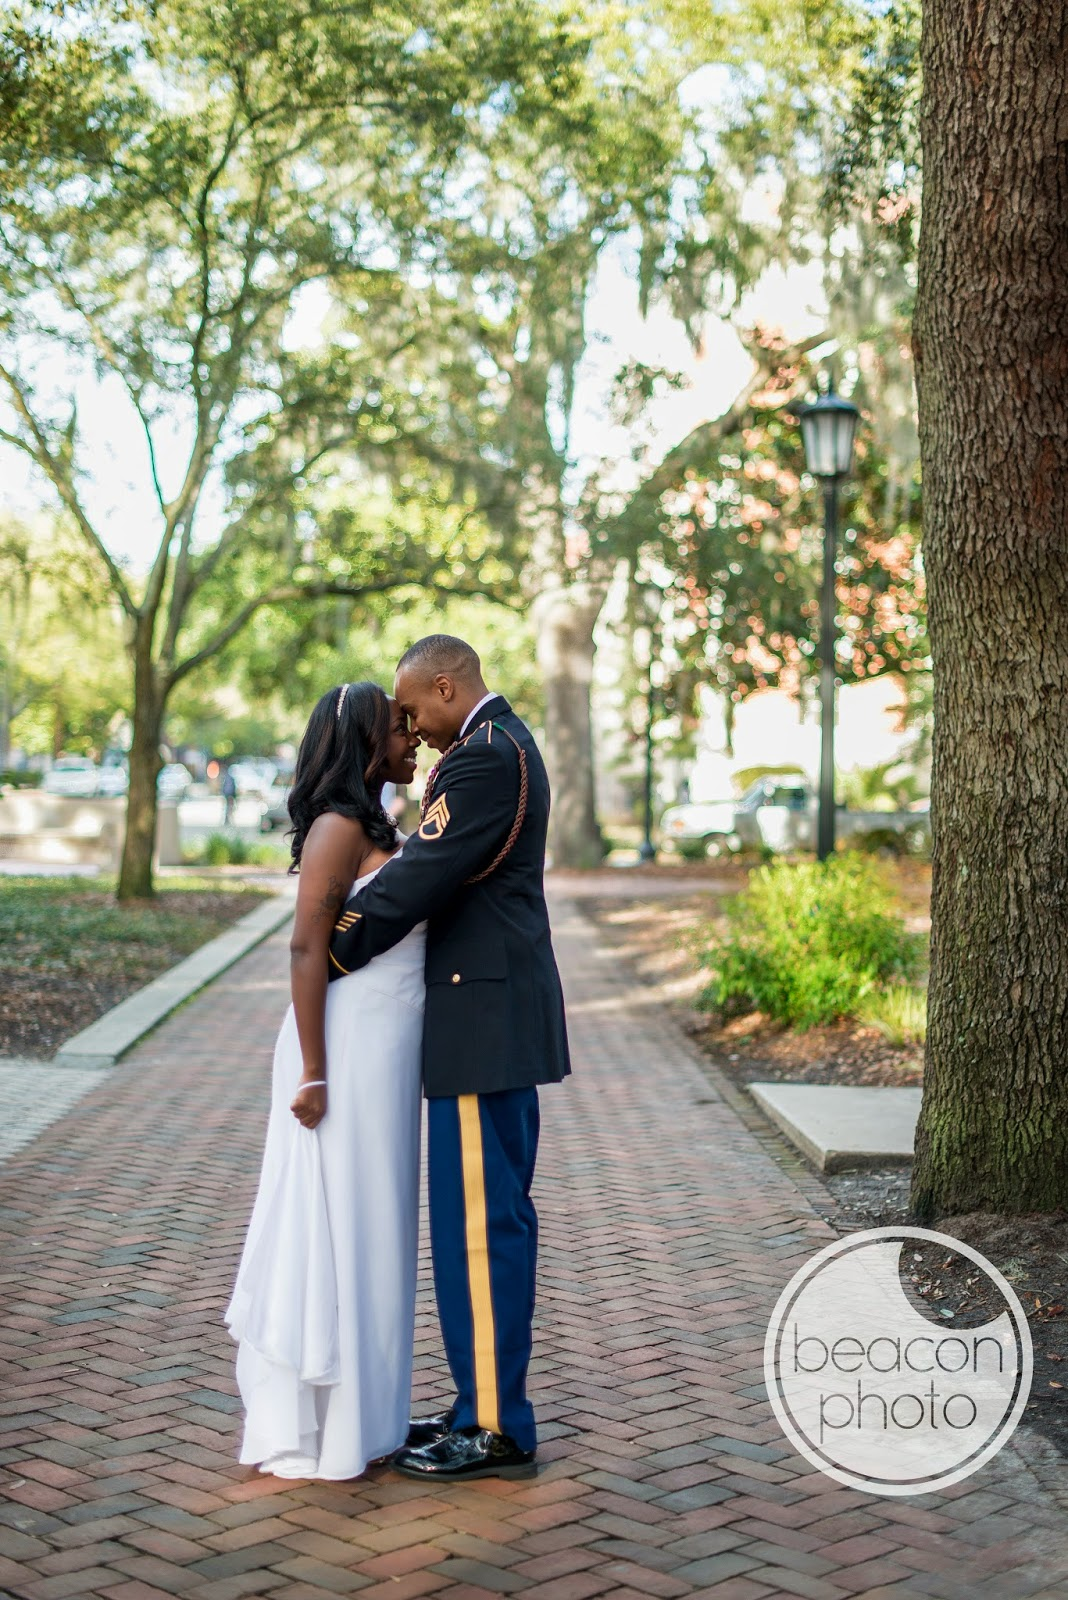 Savannah GA Weddings for Warriors photo © Beacon Photography / Michael P. Edde